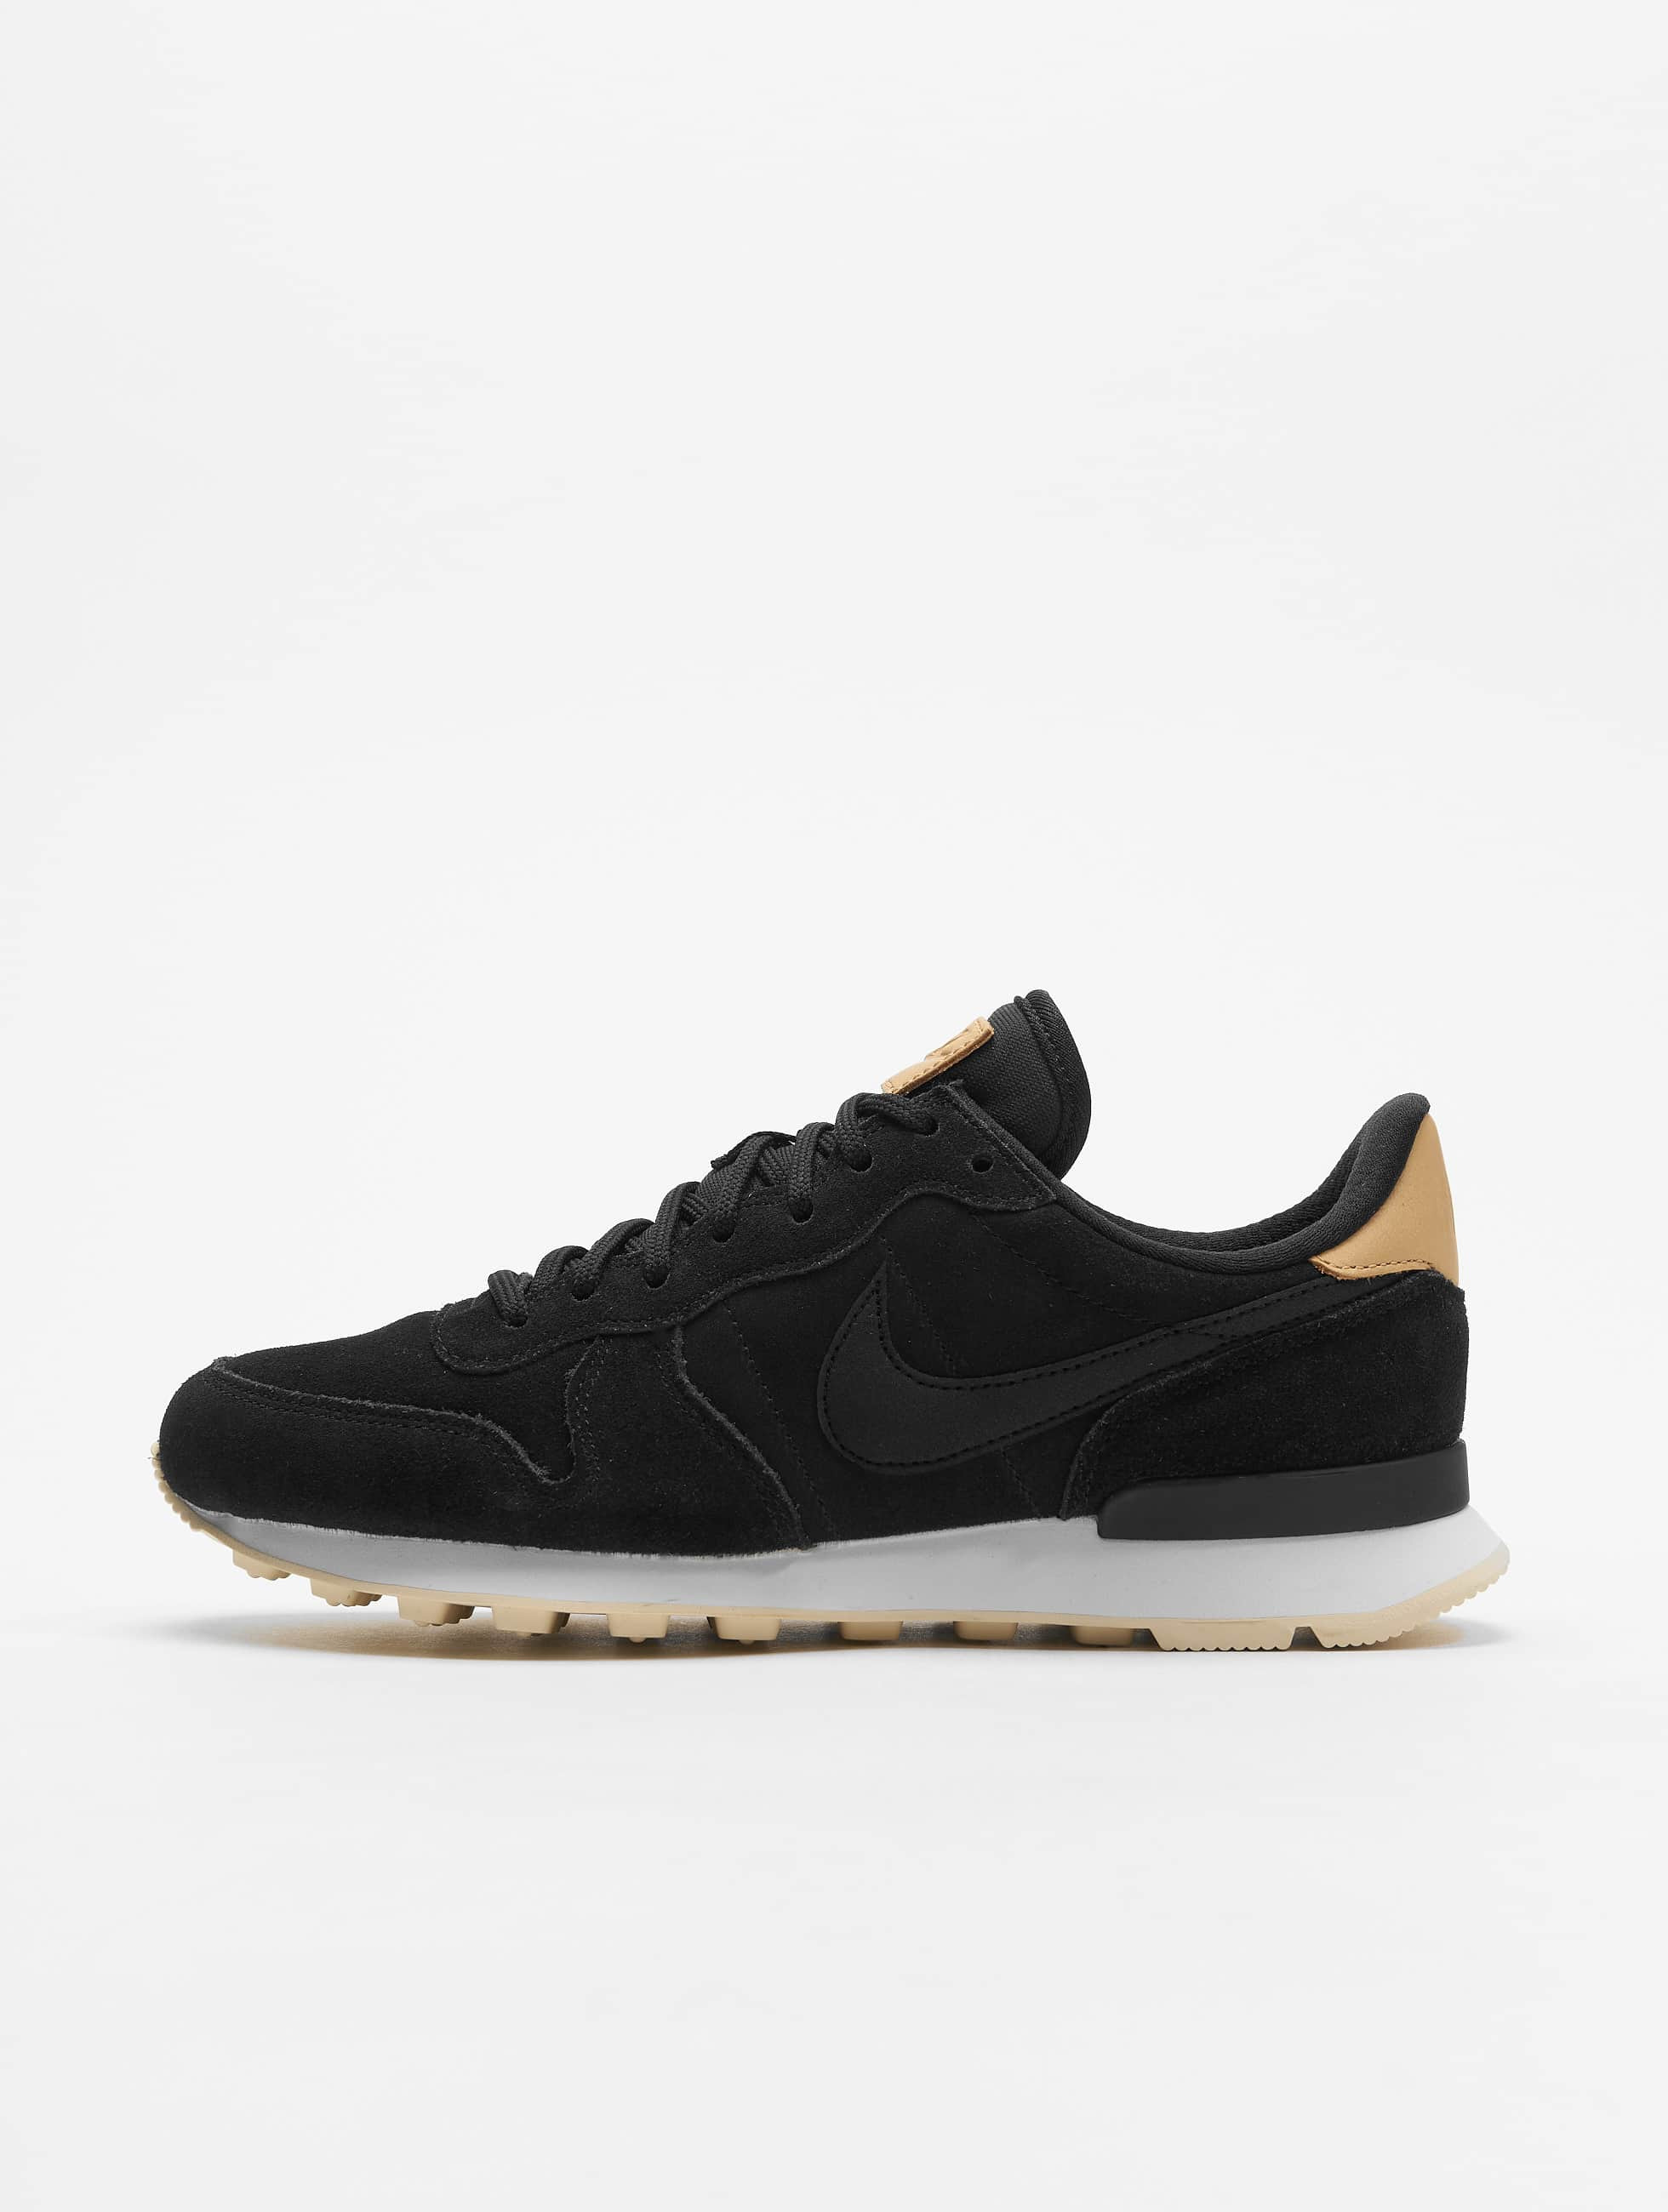 Nike W Internationalist Prm Low Top Sneakers BlackBlackSummit WhiteLight Cream